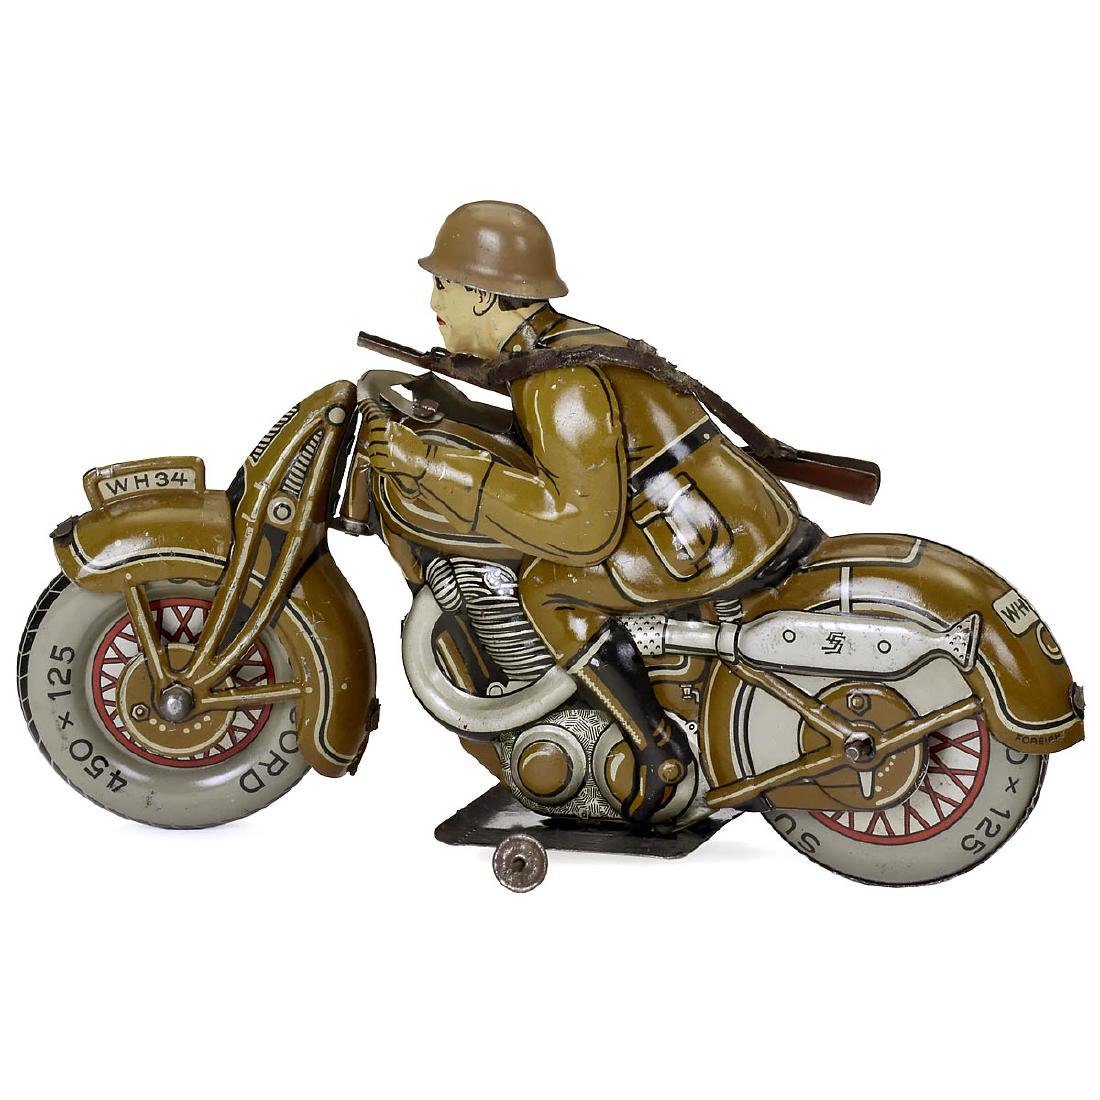 Military Motorcycle WH34 by Saalheimer & Strauss, with - 2